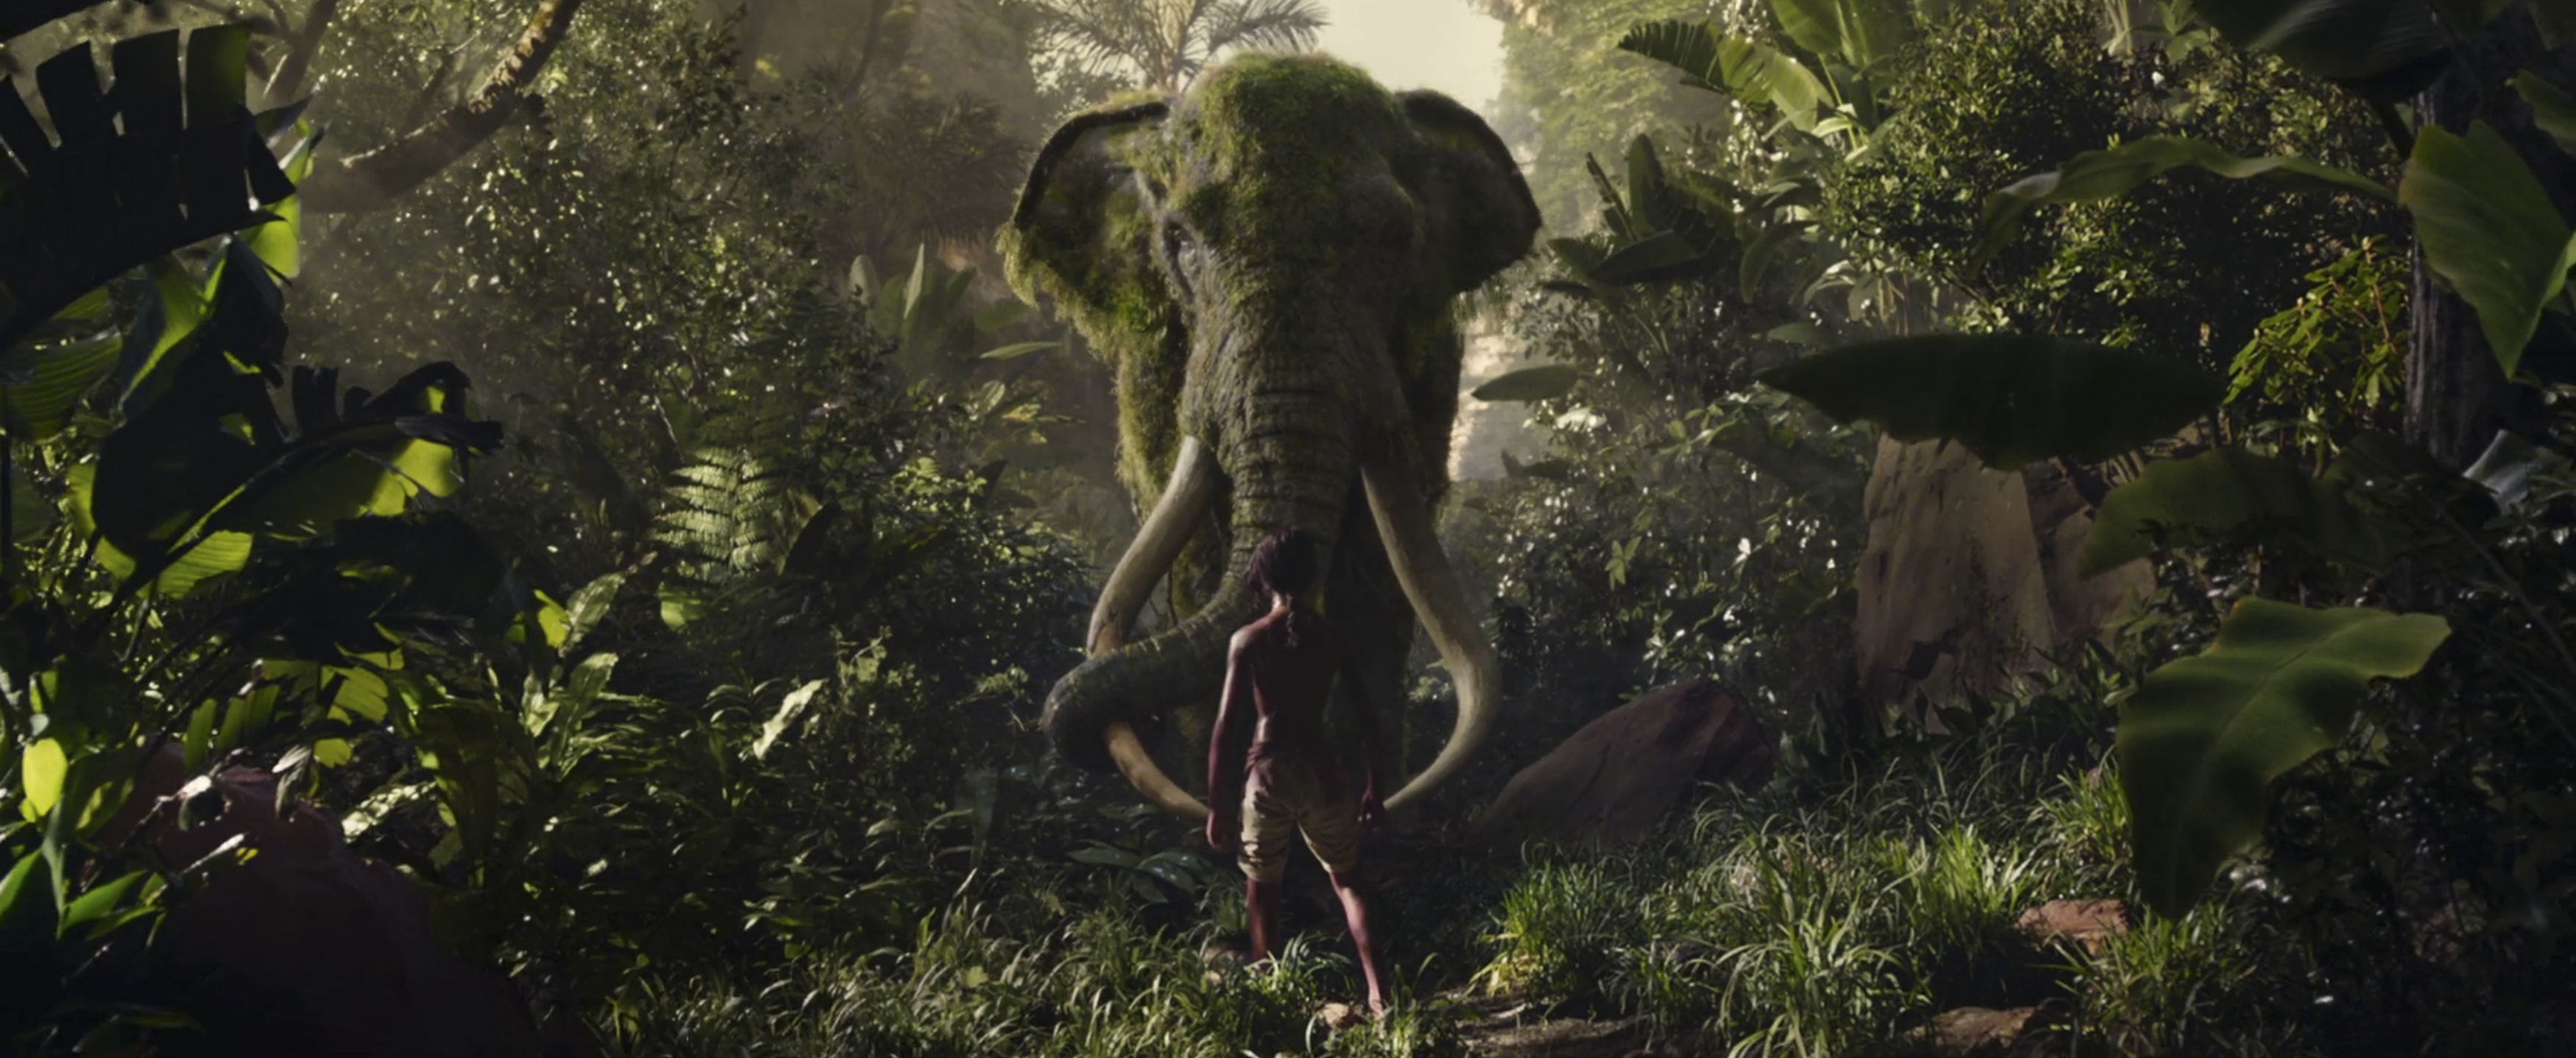 Netflix and Andy Serkis try to outdo Disney in first trailer for The Jungle Book screenshot